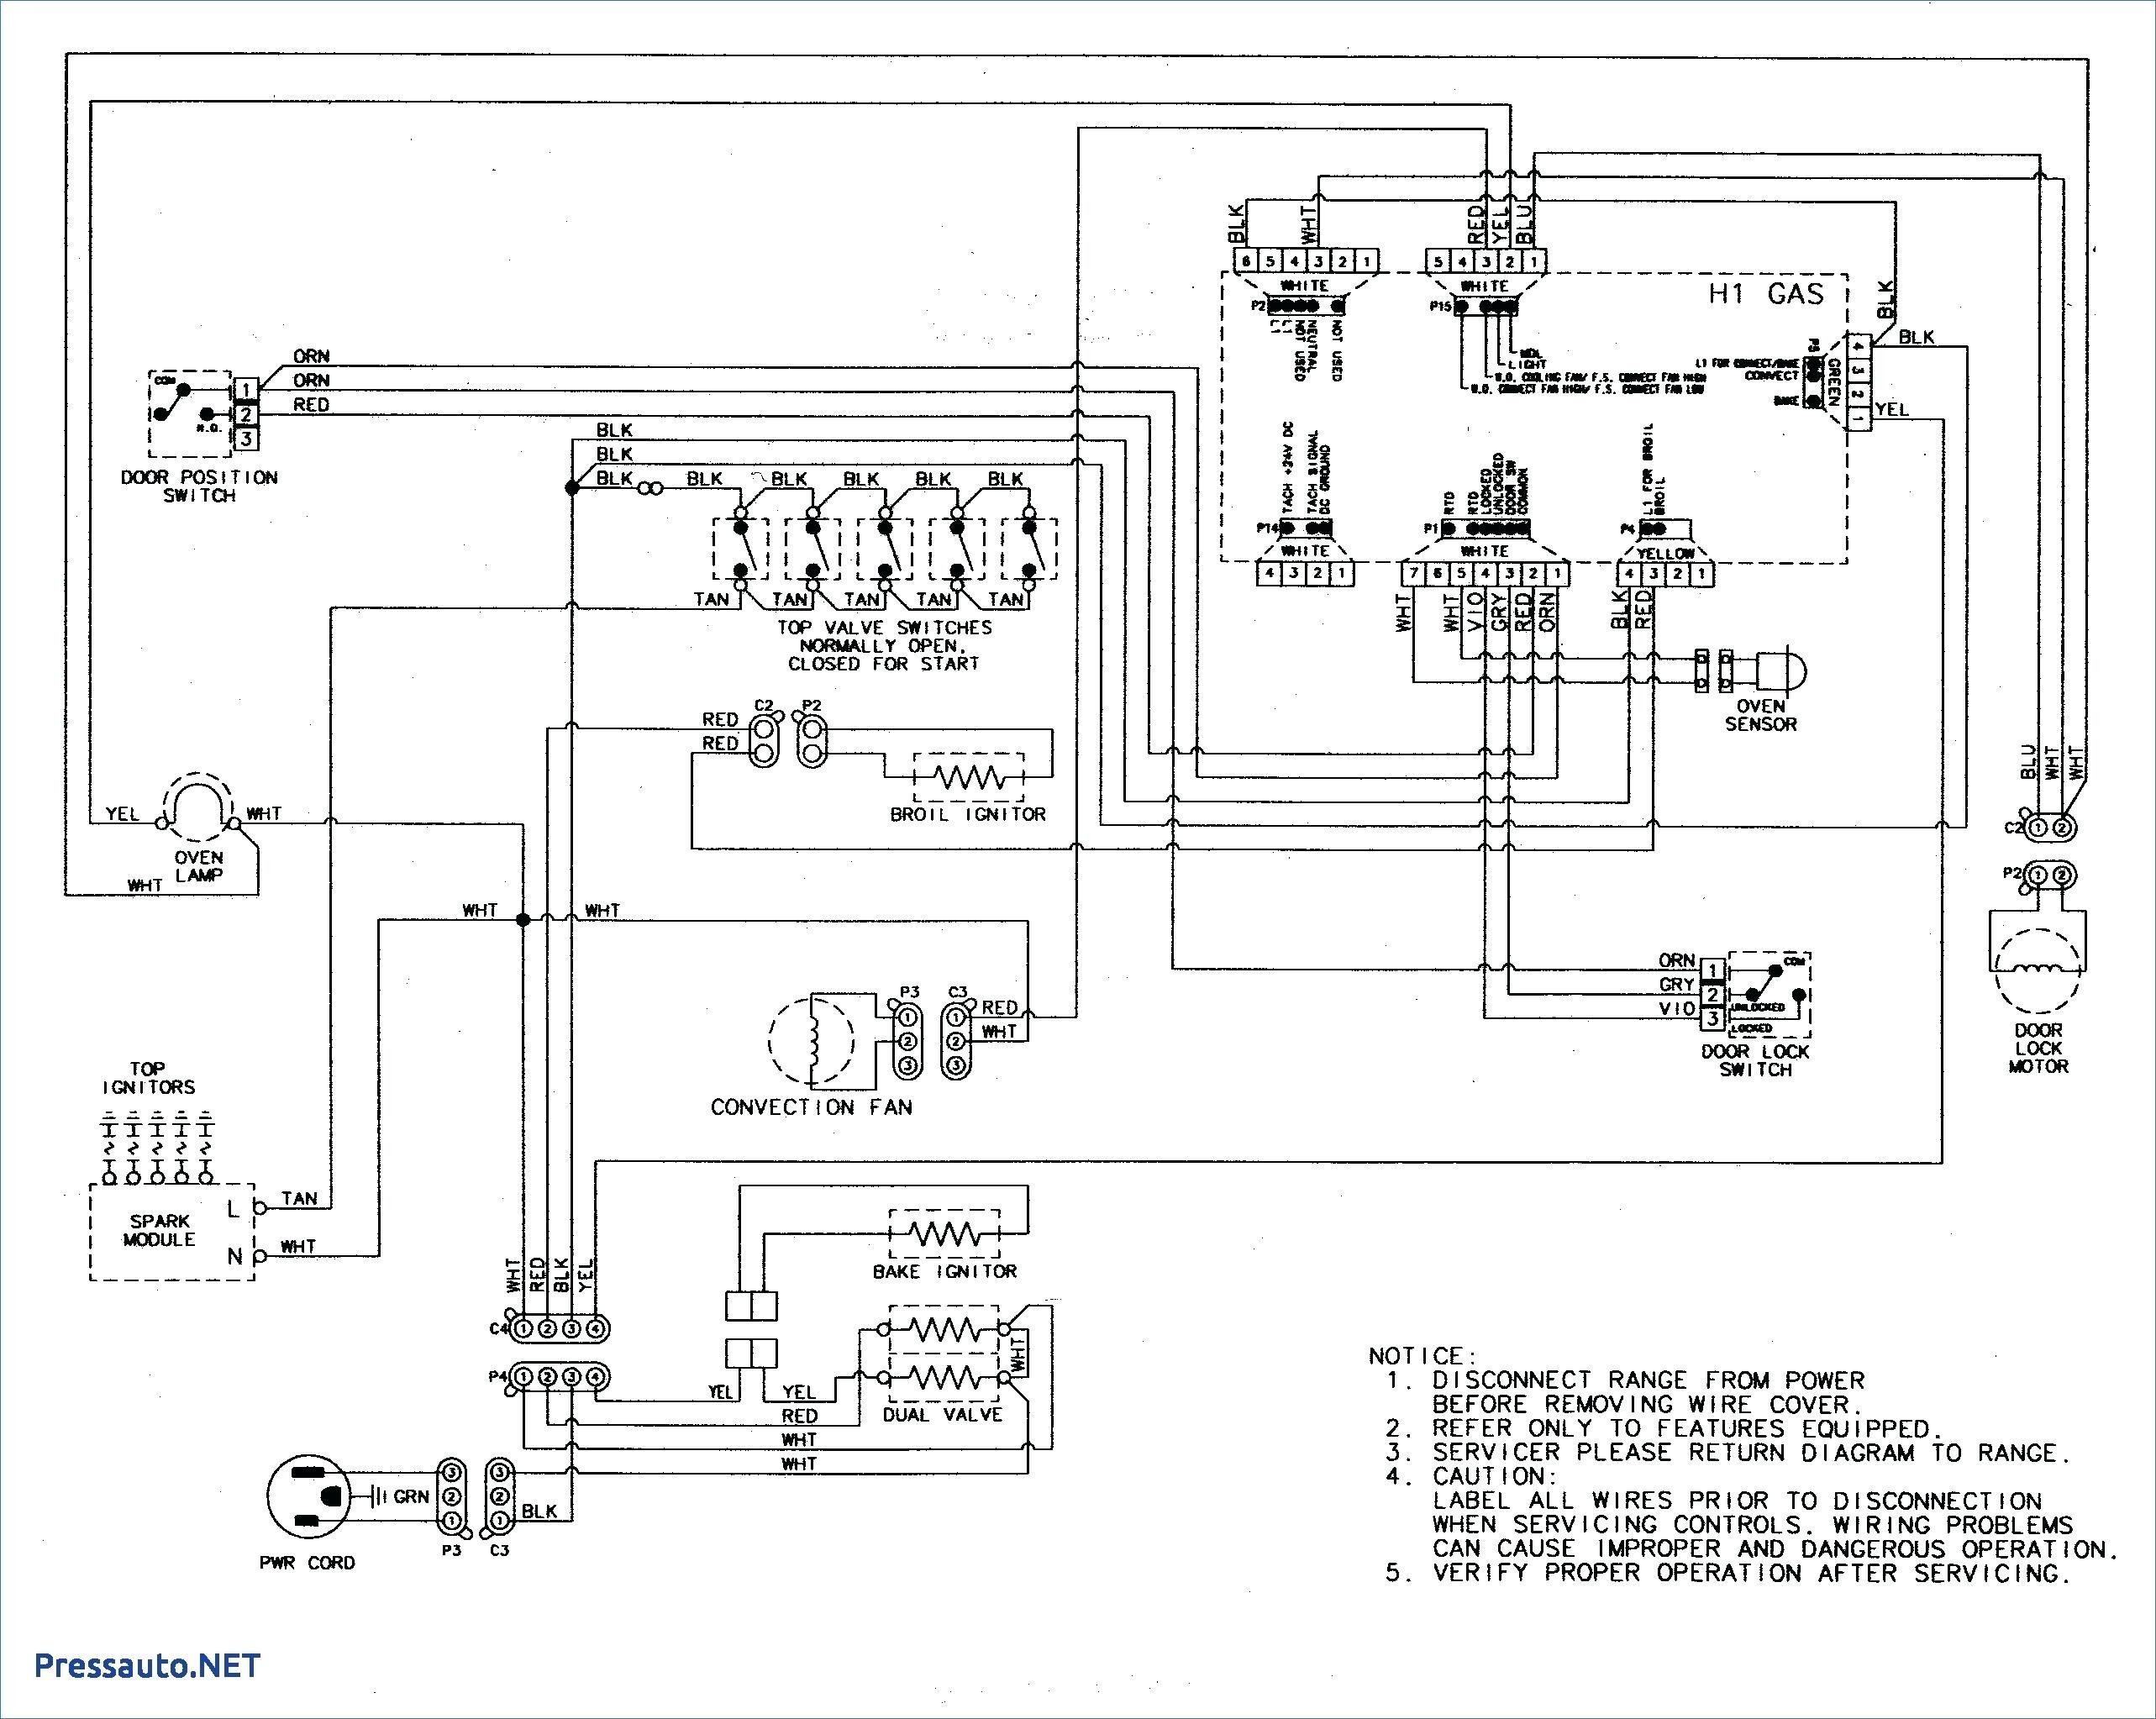 Automotive Wiring Diagrams Pdf Download How To Read Ac Online Schematic Diagram U2022 Rh Holyoak Co Ppt